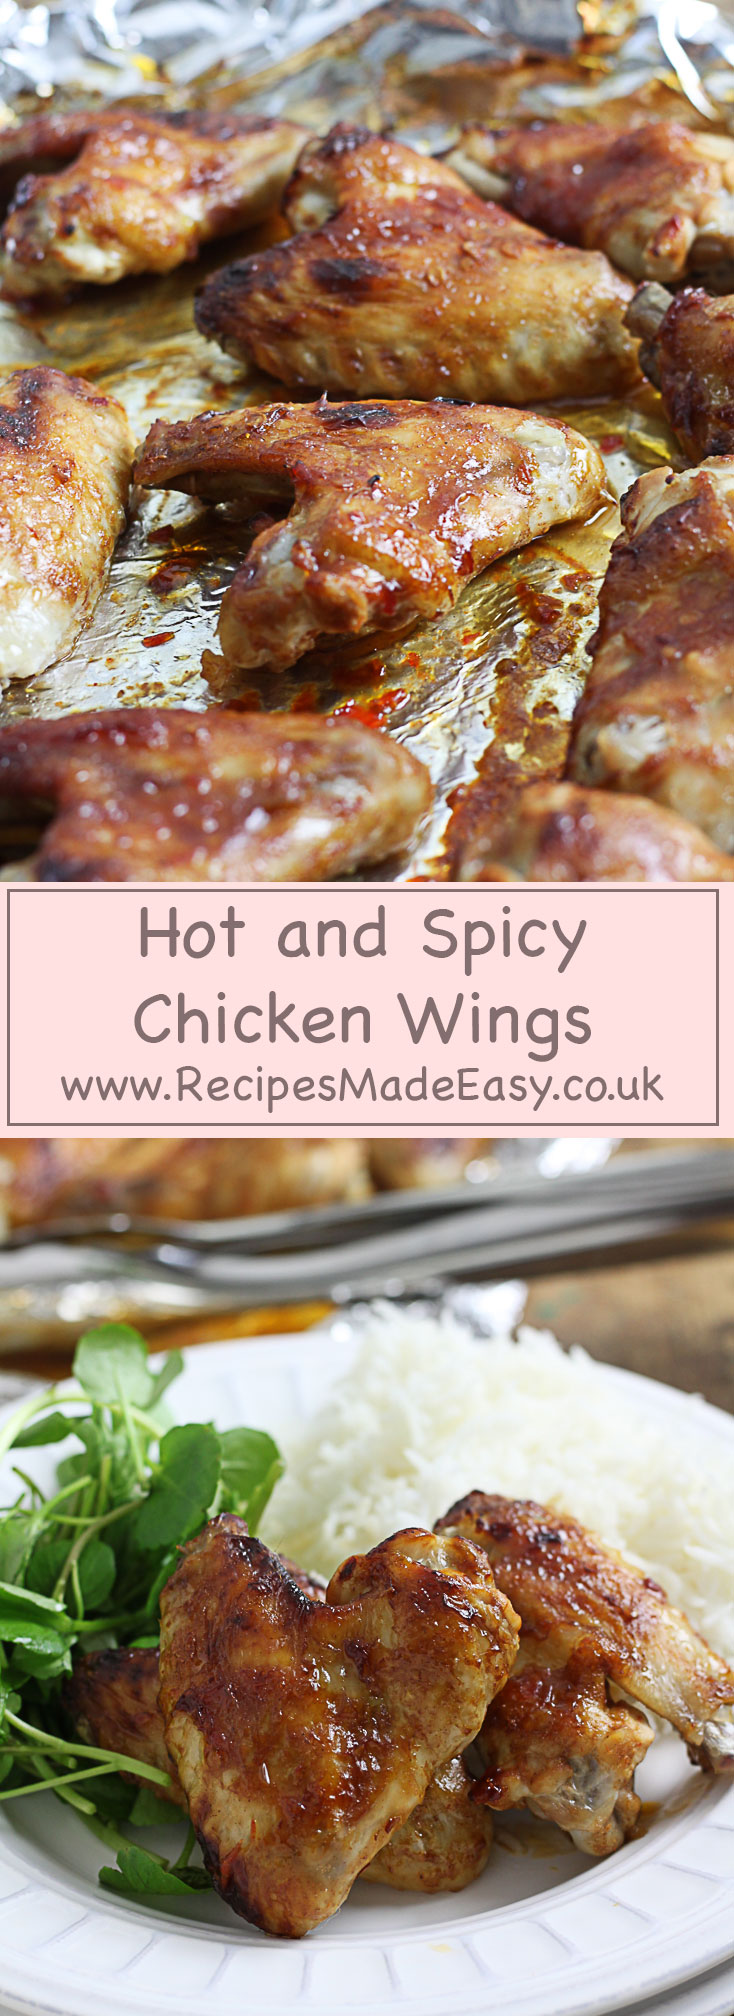 hot and spicy chicken wings on a baking sheet and served with rice